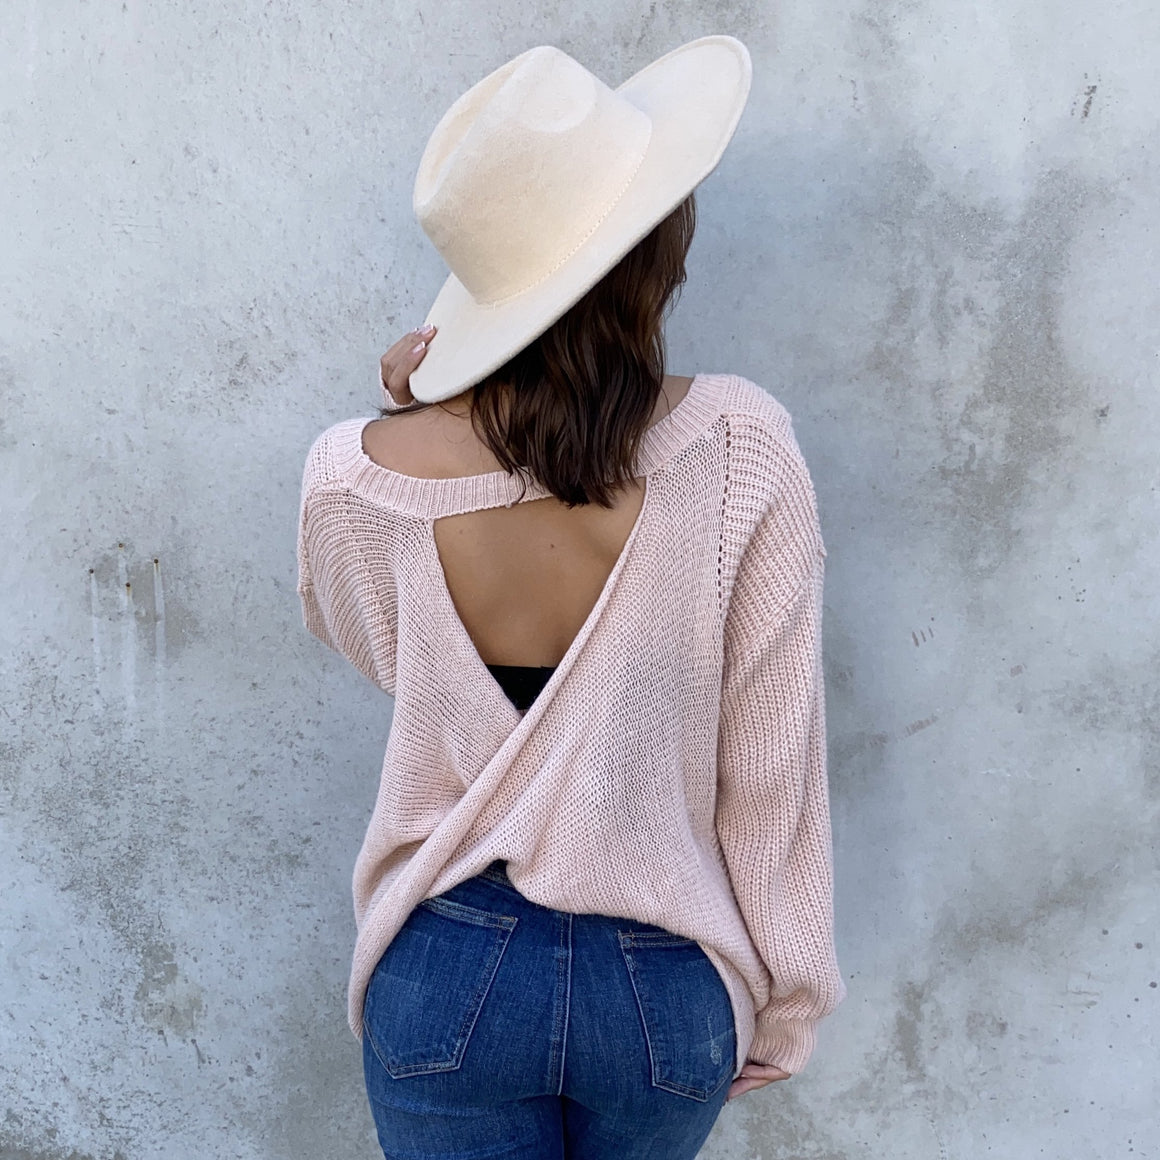 Give It A Twist Knit Sweater In Pink - Dainty Hooligan